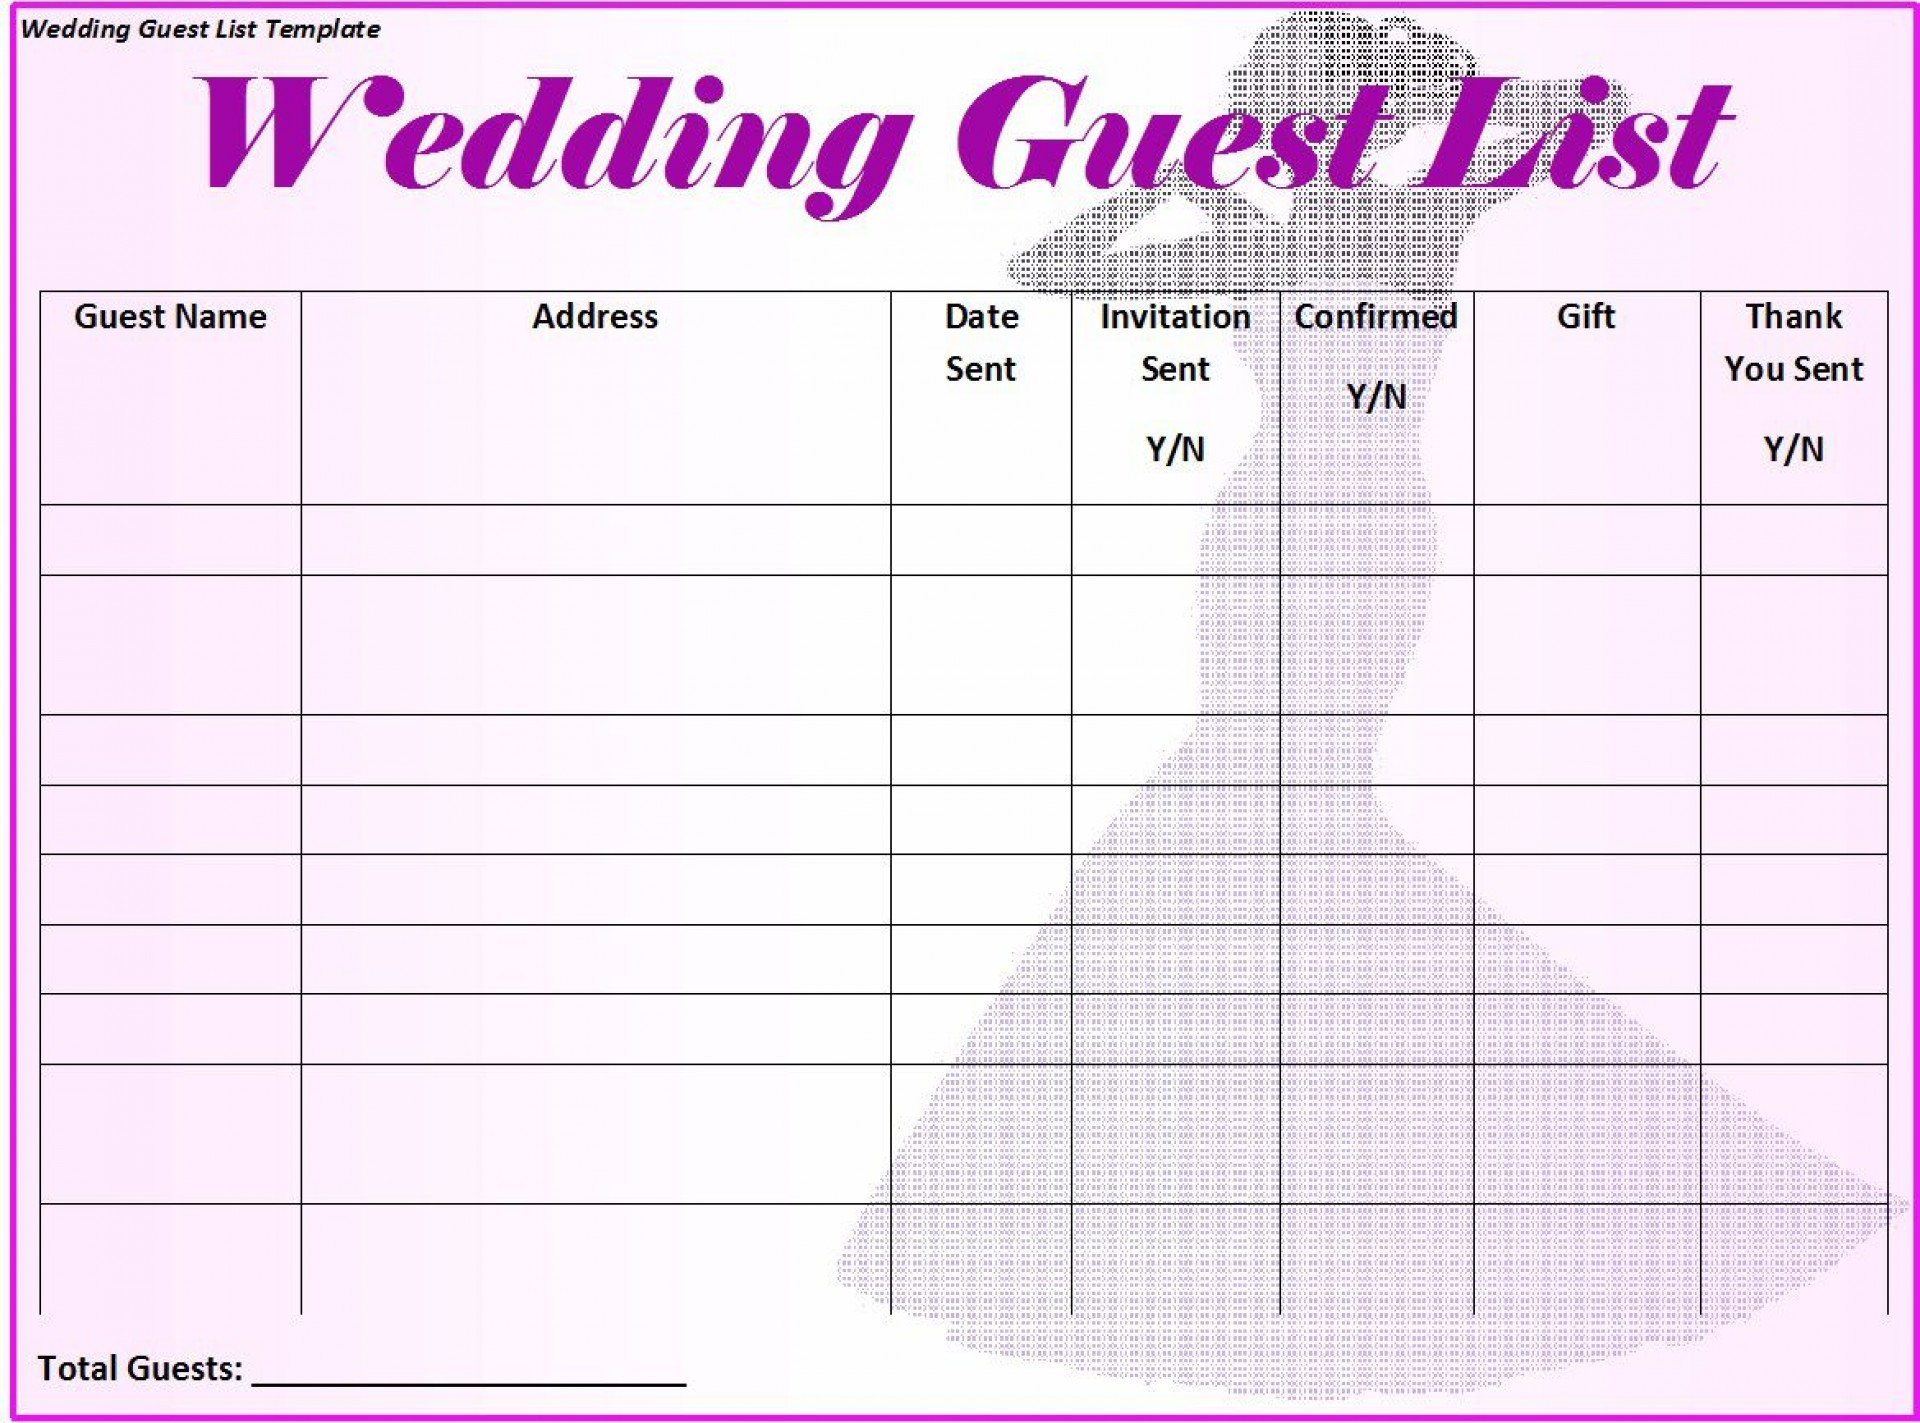 007 Frightening Wedding Guest List Template Excel Download Concept 1920